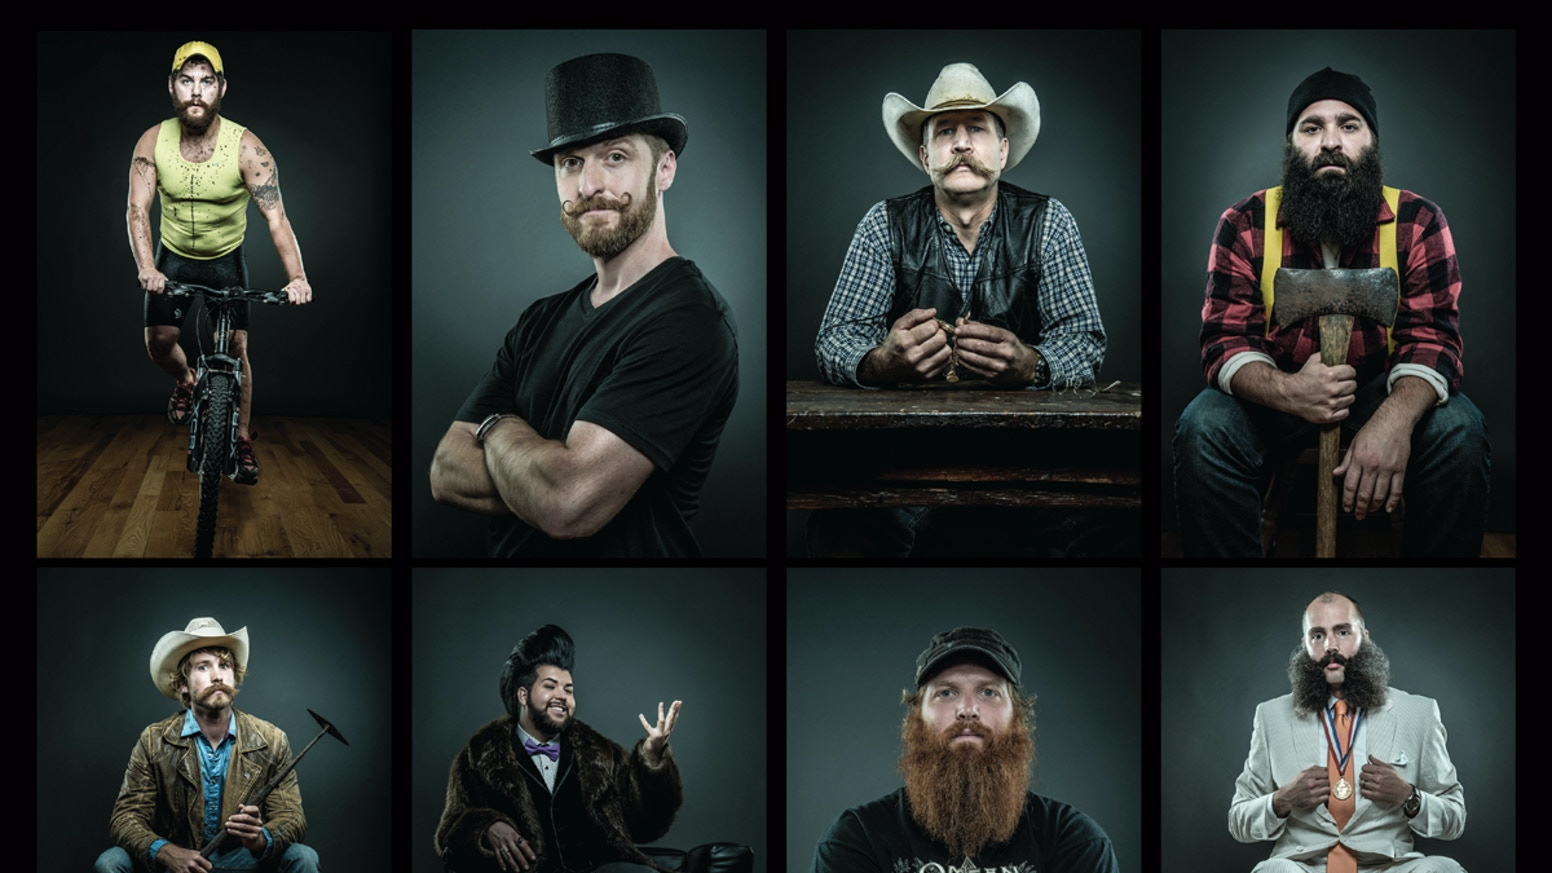 Of Beards and Men: A Portrait of Man by Joseph D R  OLeary